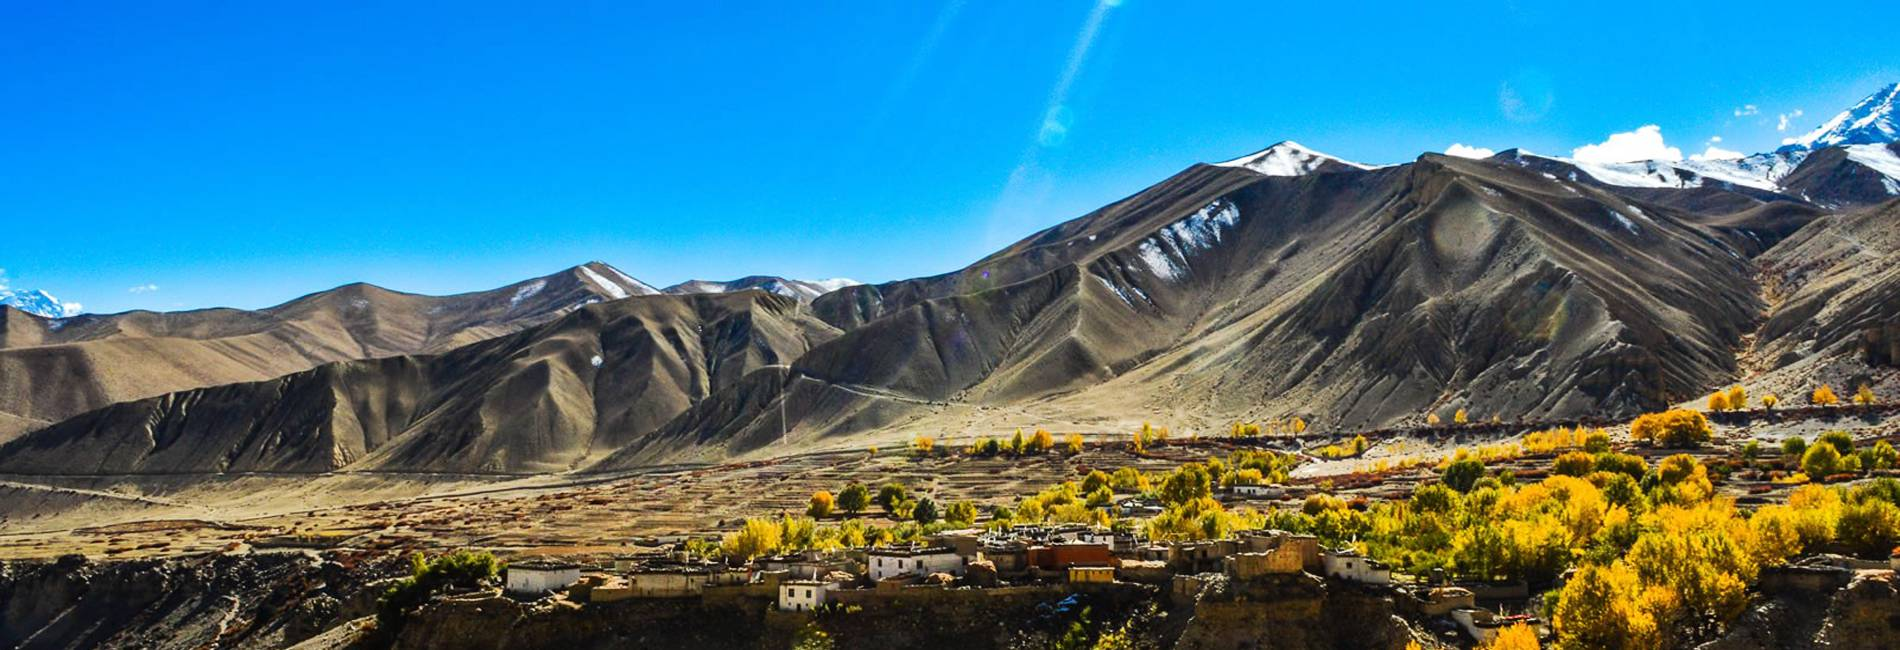 Upper Mustang Trek: Trek to Last Forbidden Kingdom